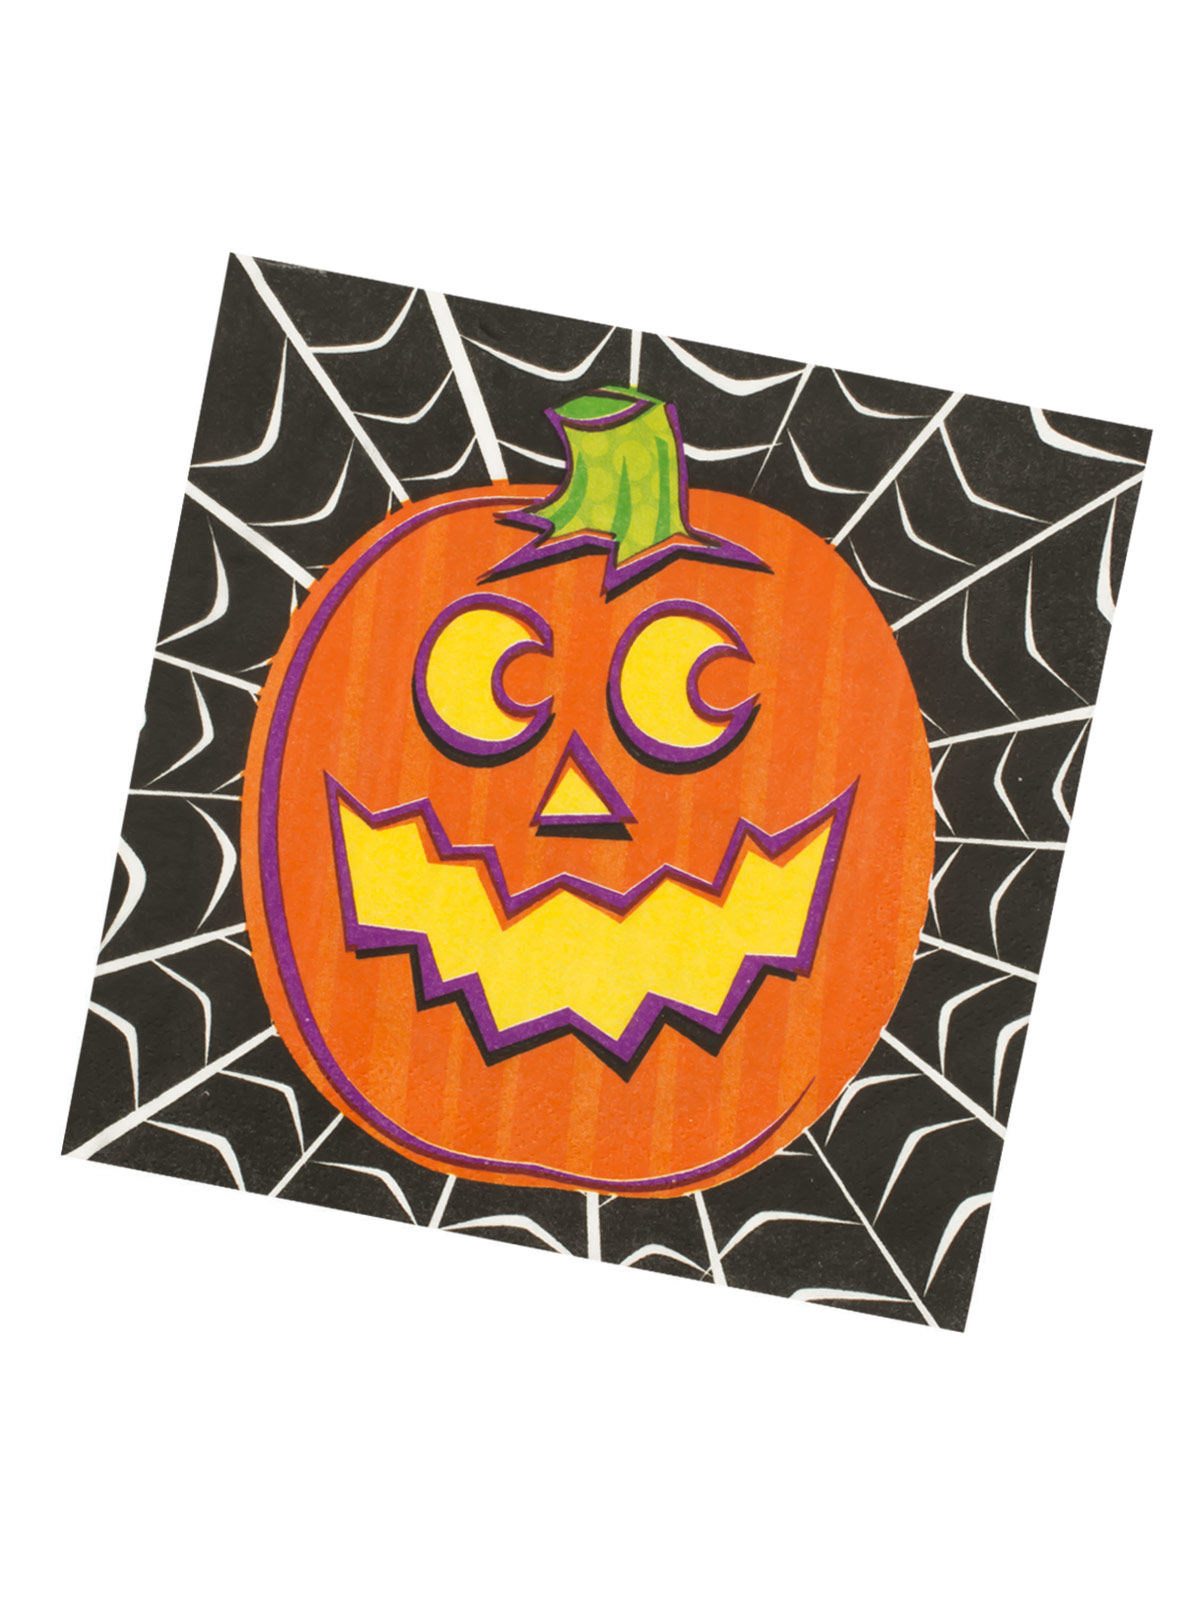 Halloween Gespenster Servietten Halloween Pappgeschirr Grinsender Kürbis 16 Servietten Orange Schwarz 33x33cm